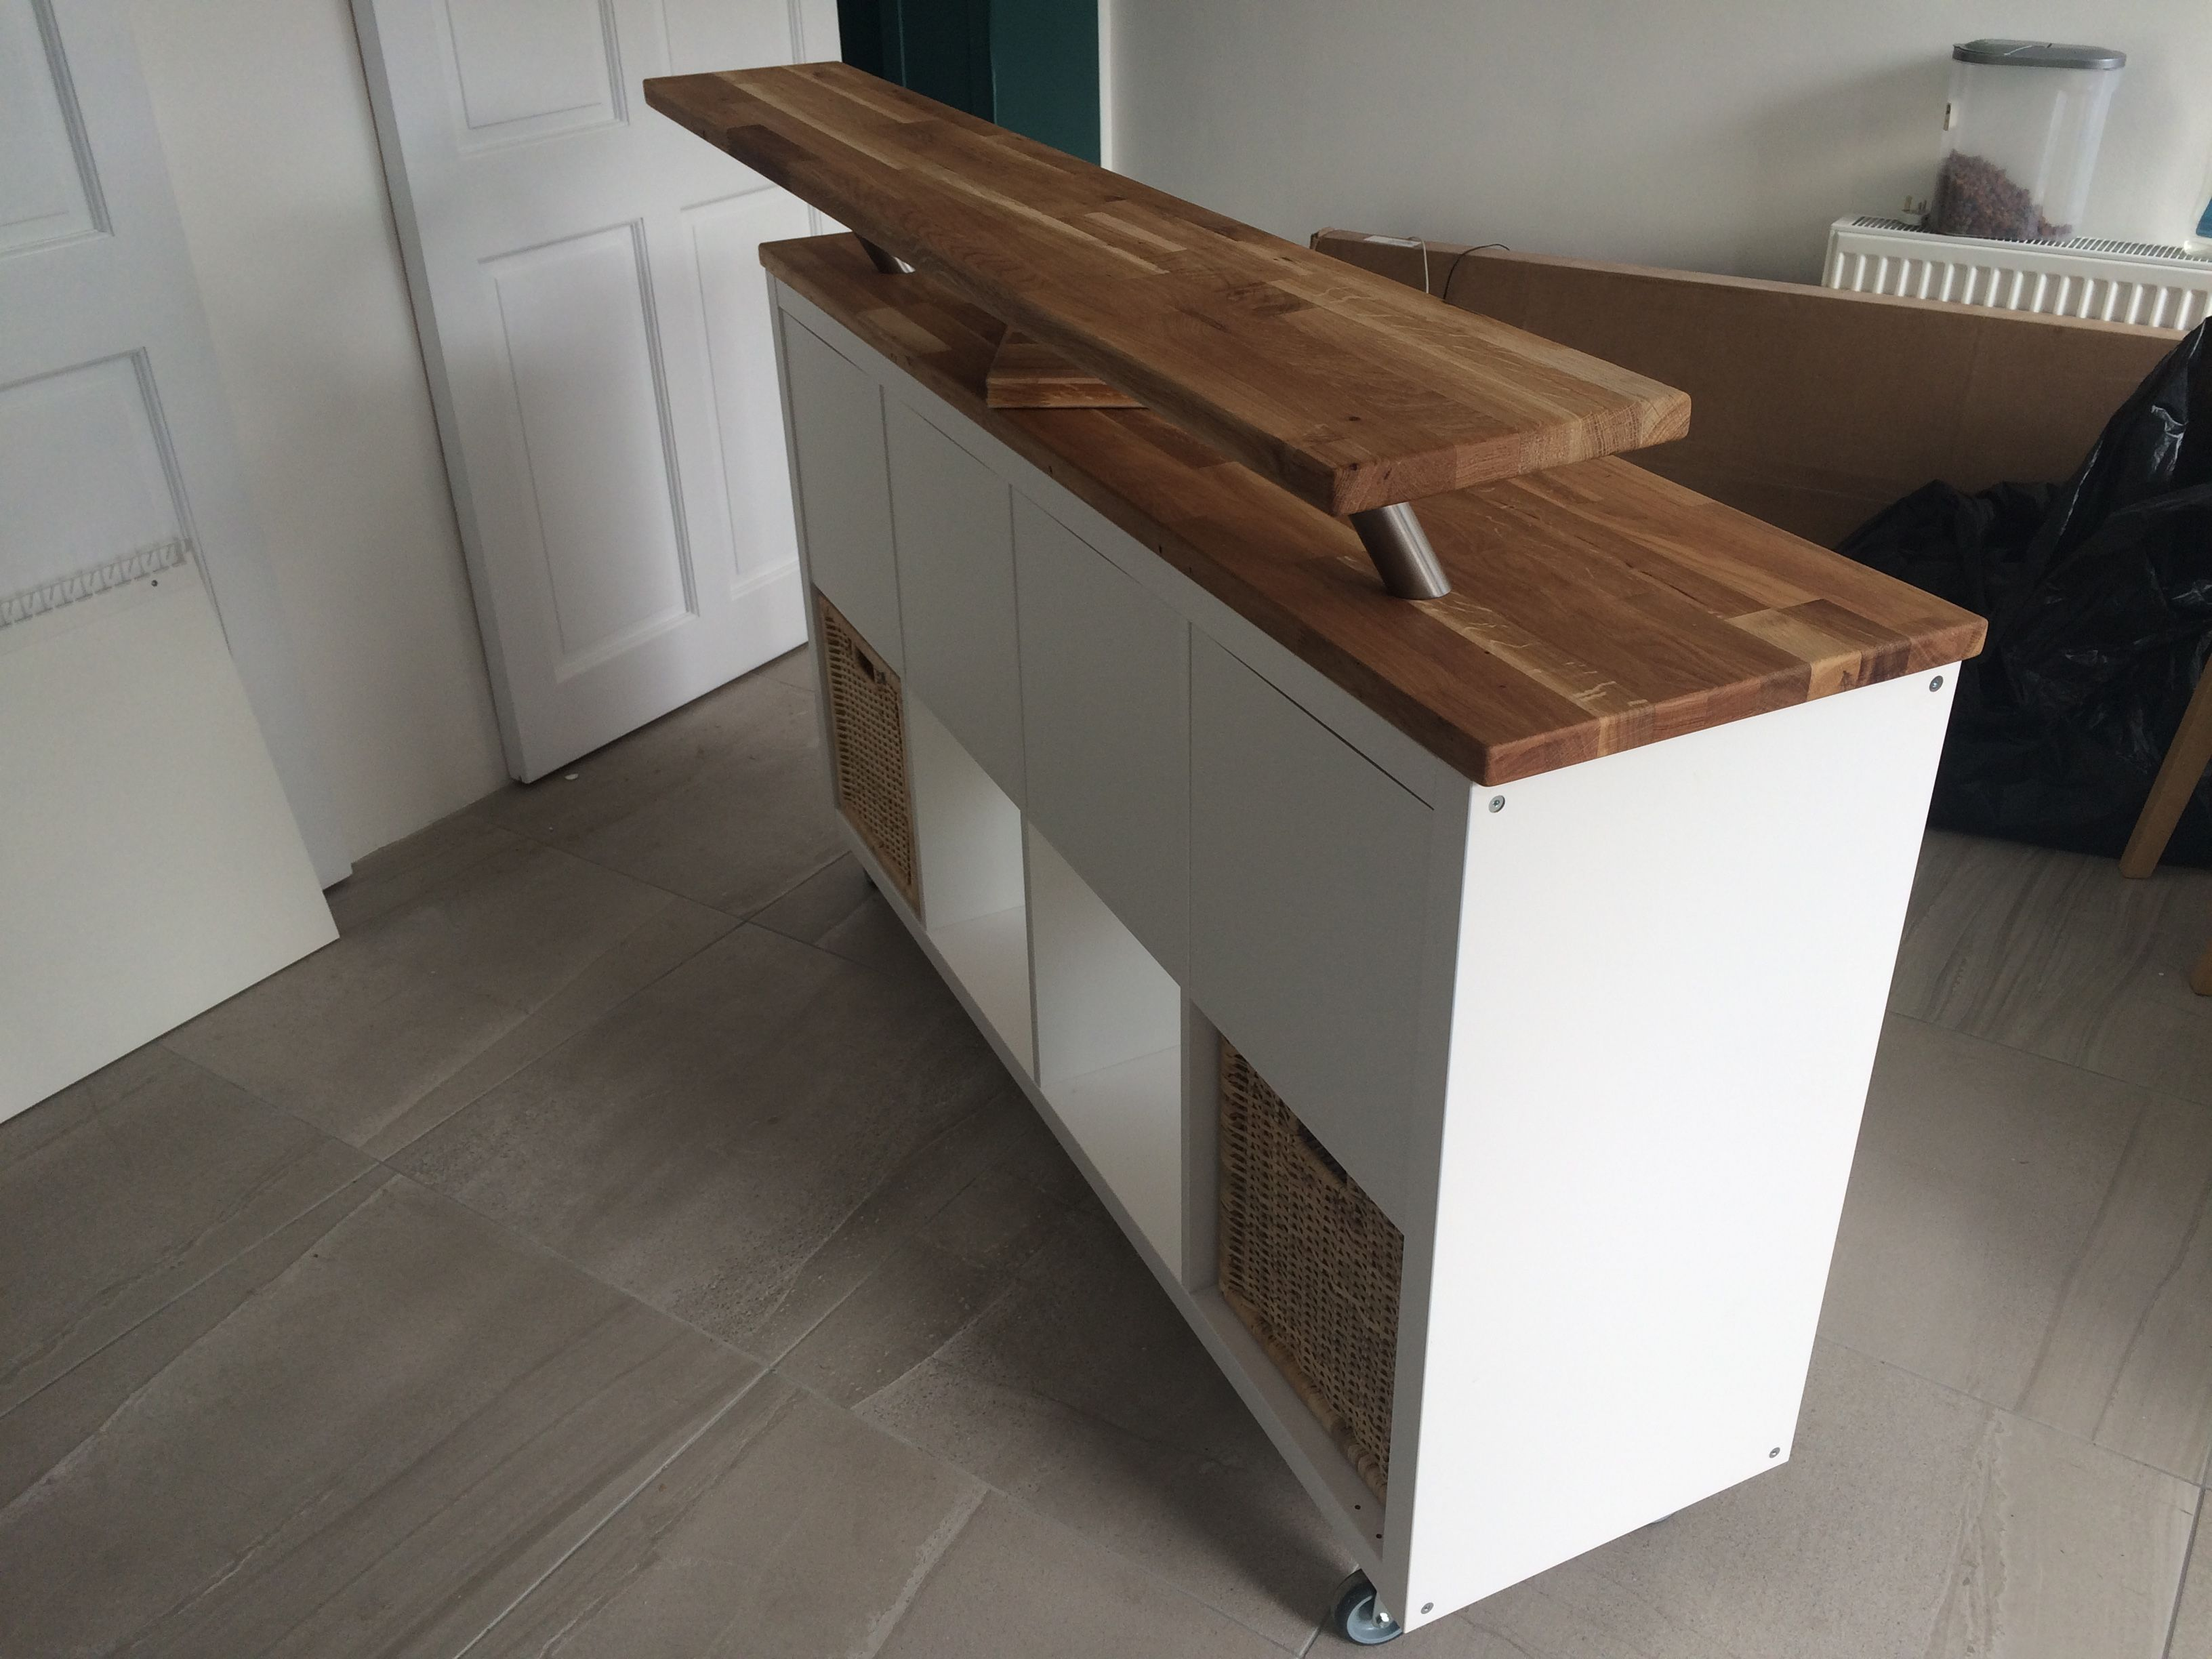 Ikea Hack. Kitchen Island + Breakfast Bar. Kallax On Heavy Duty Casters  With Offcuts Of Hammar Solid Wood Counter Top.